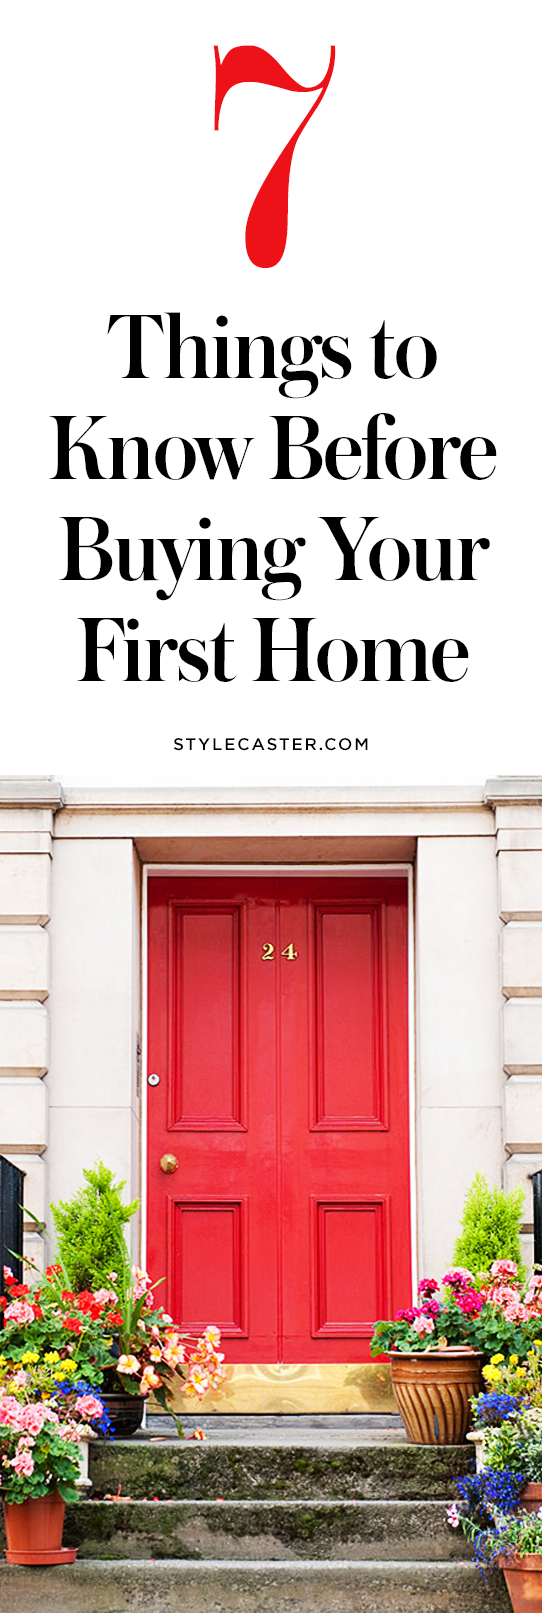 The best home buying tips and advice   @stylecaster